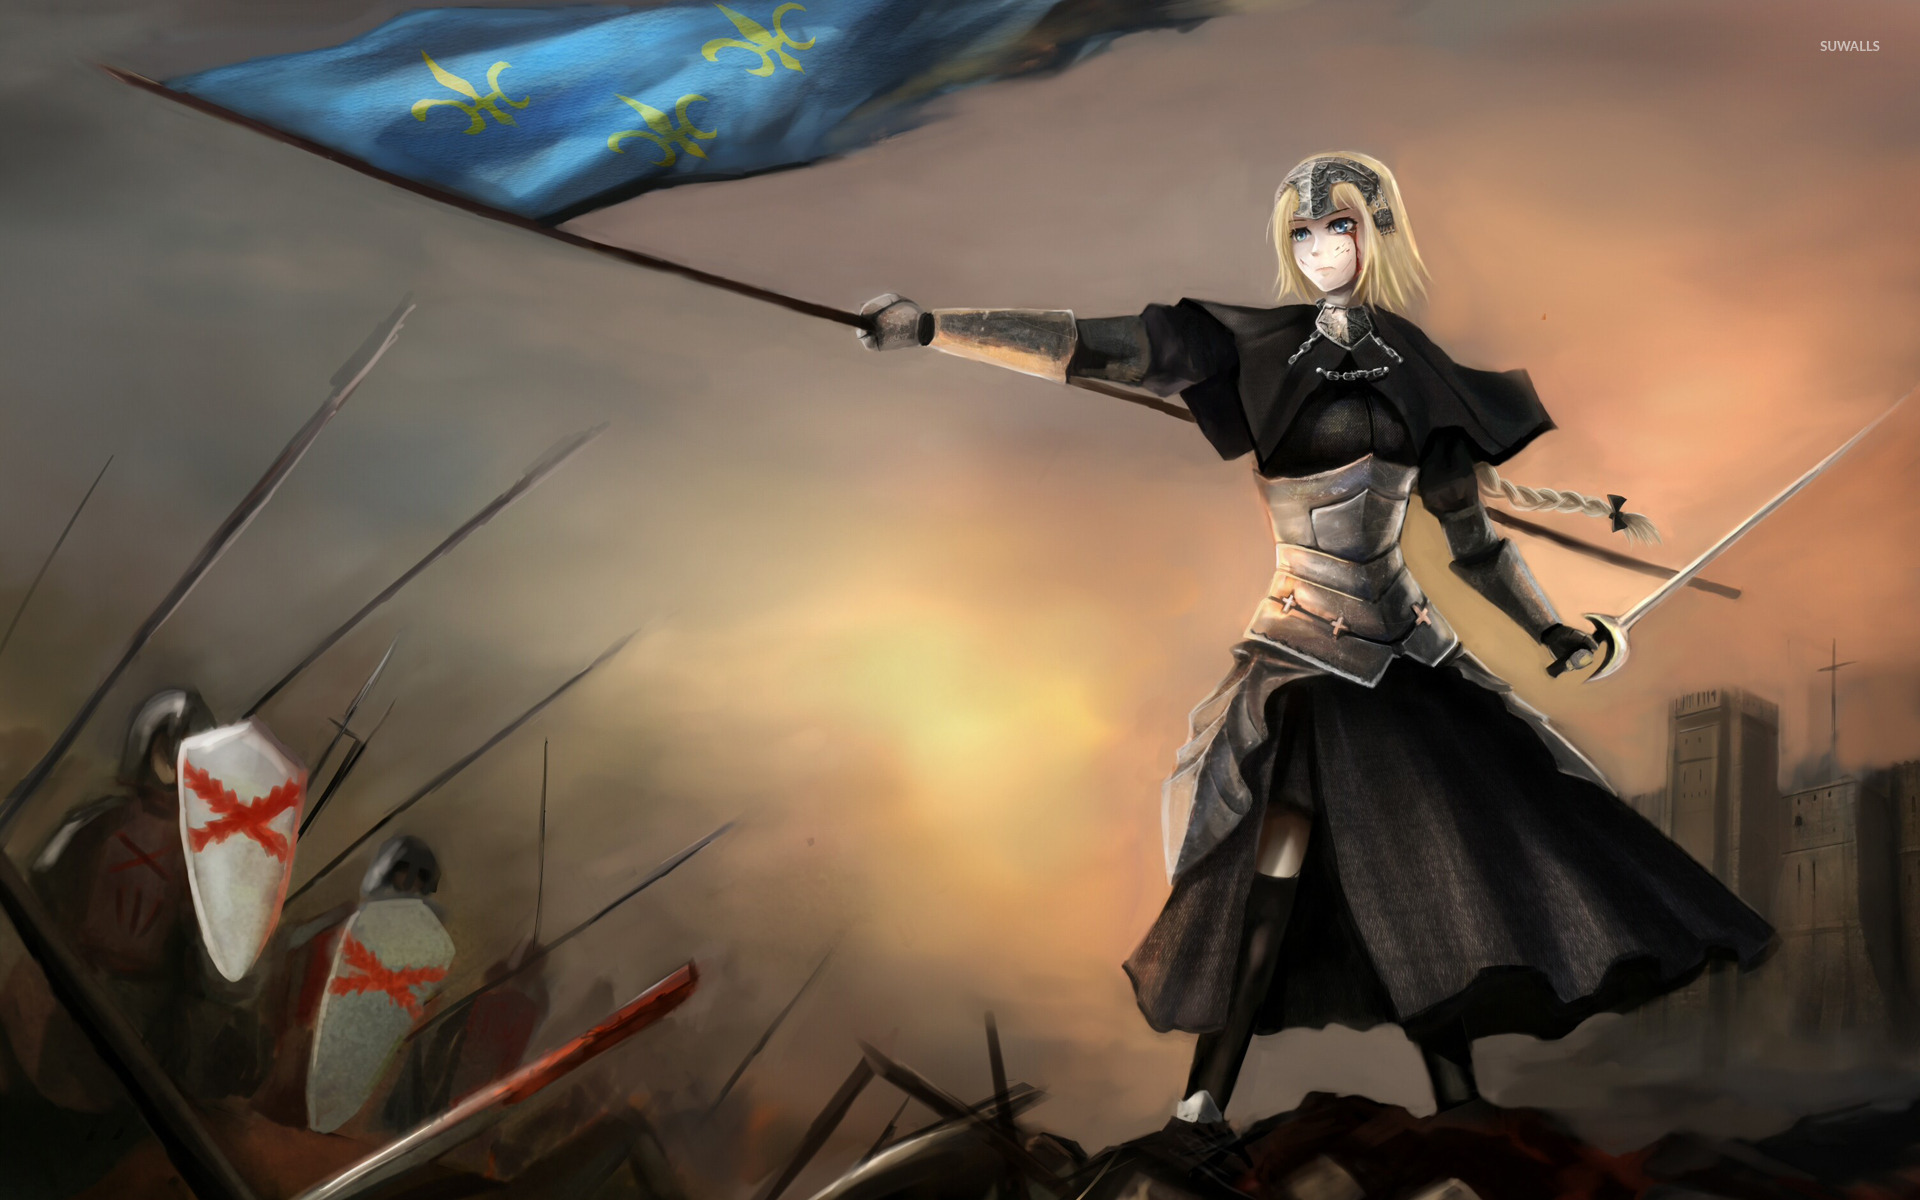 Ruler Fateapocrypha Wallpaper Anime Wallpapers 18415